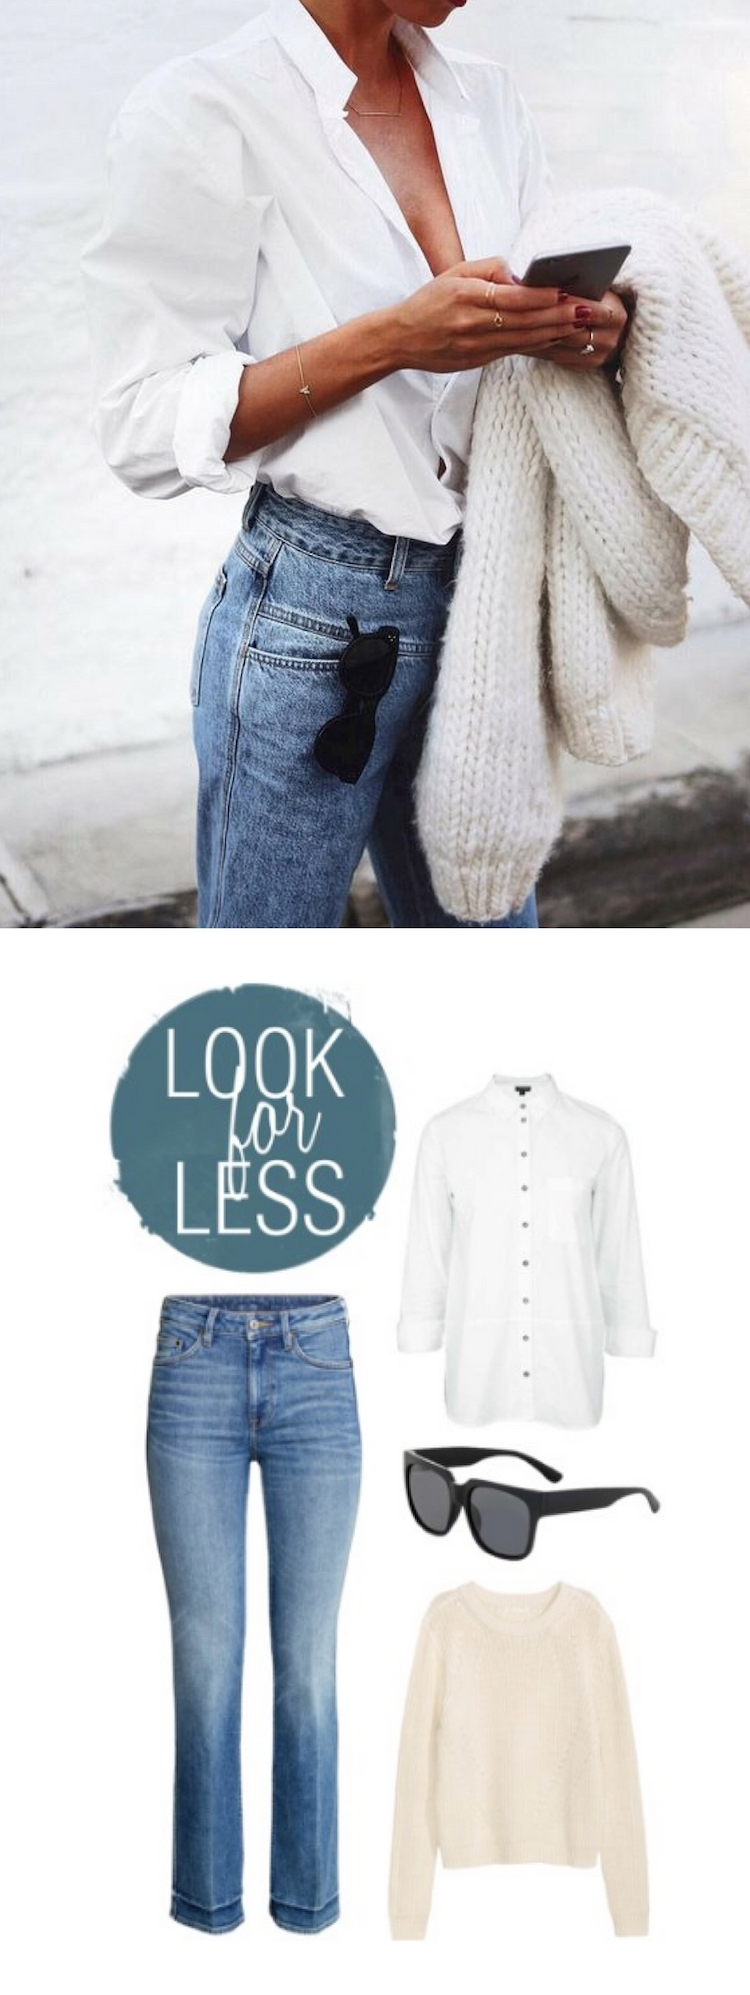 LOOK FOR LESS 2.jpg